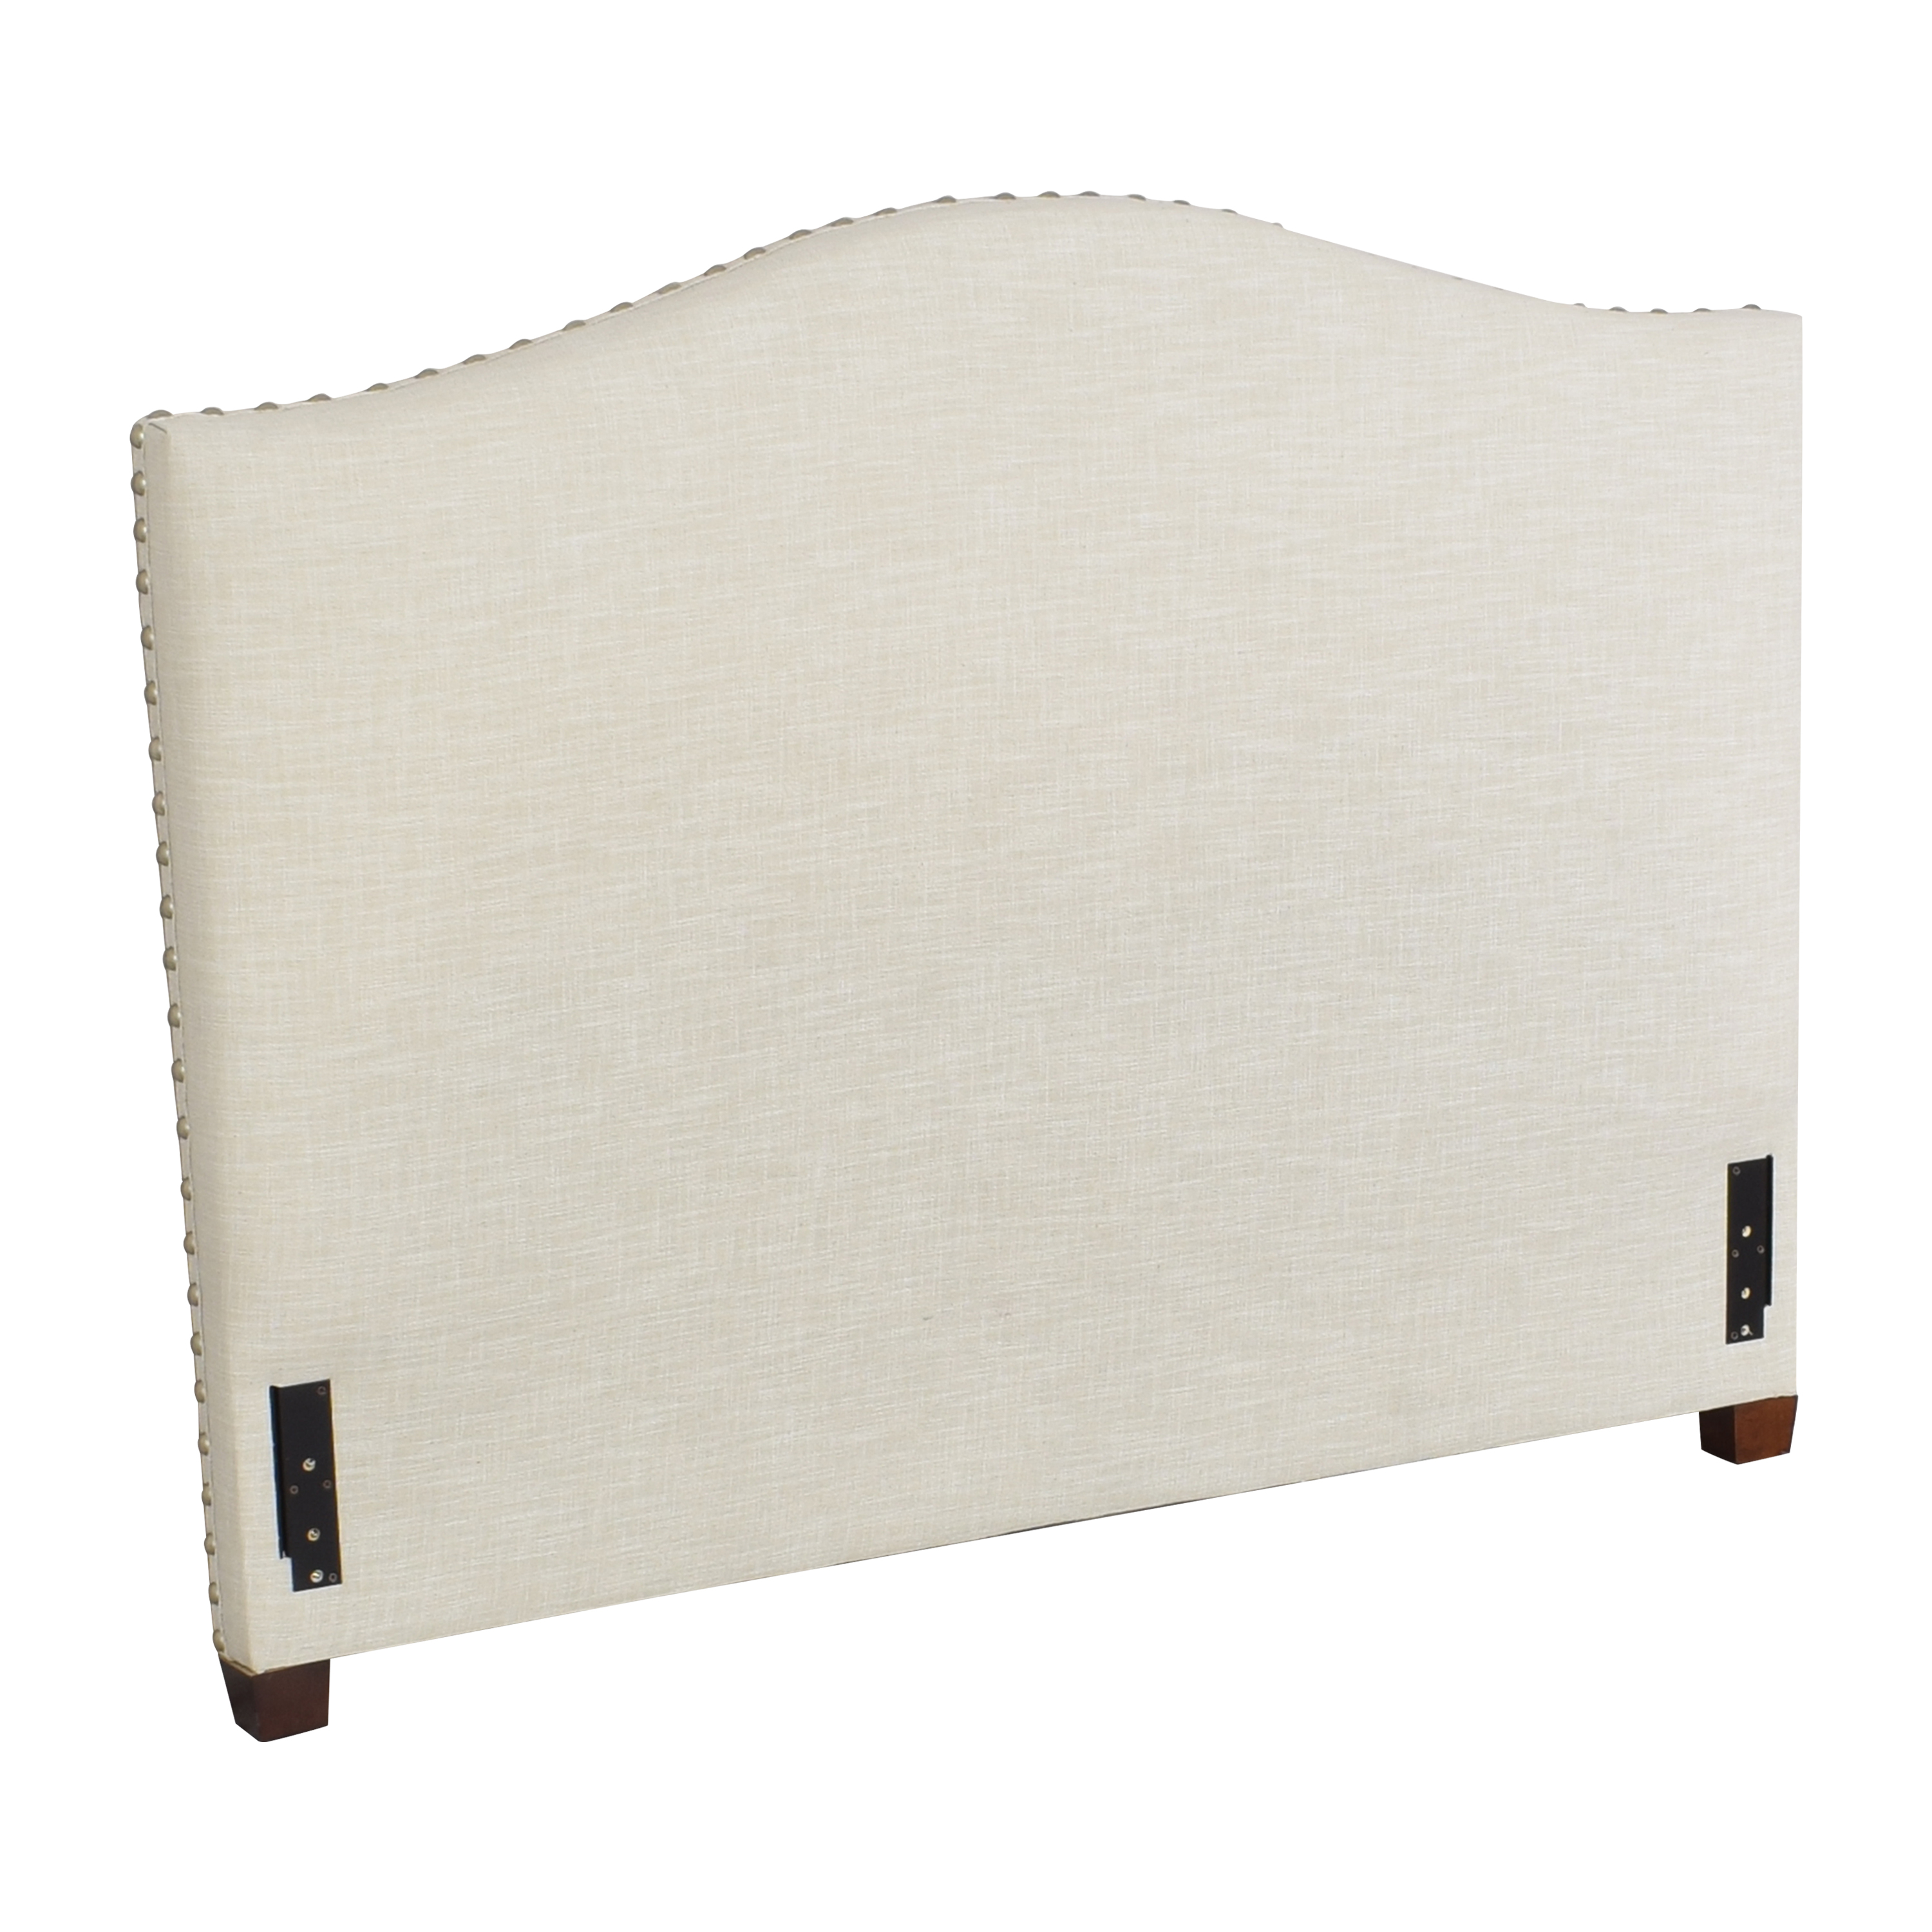 shop Pottery Barn Raleigh Curved Upholstered Queen Headboard Pottery Barn